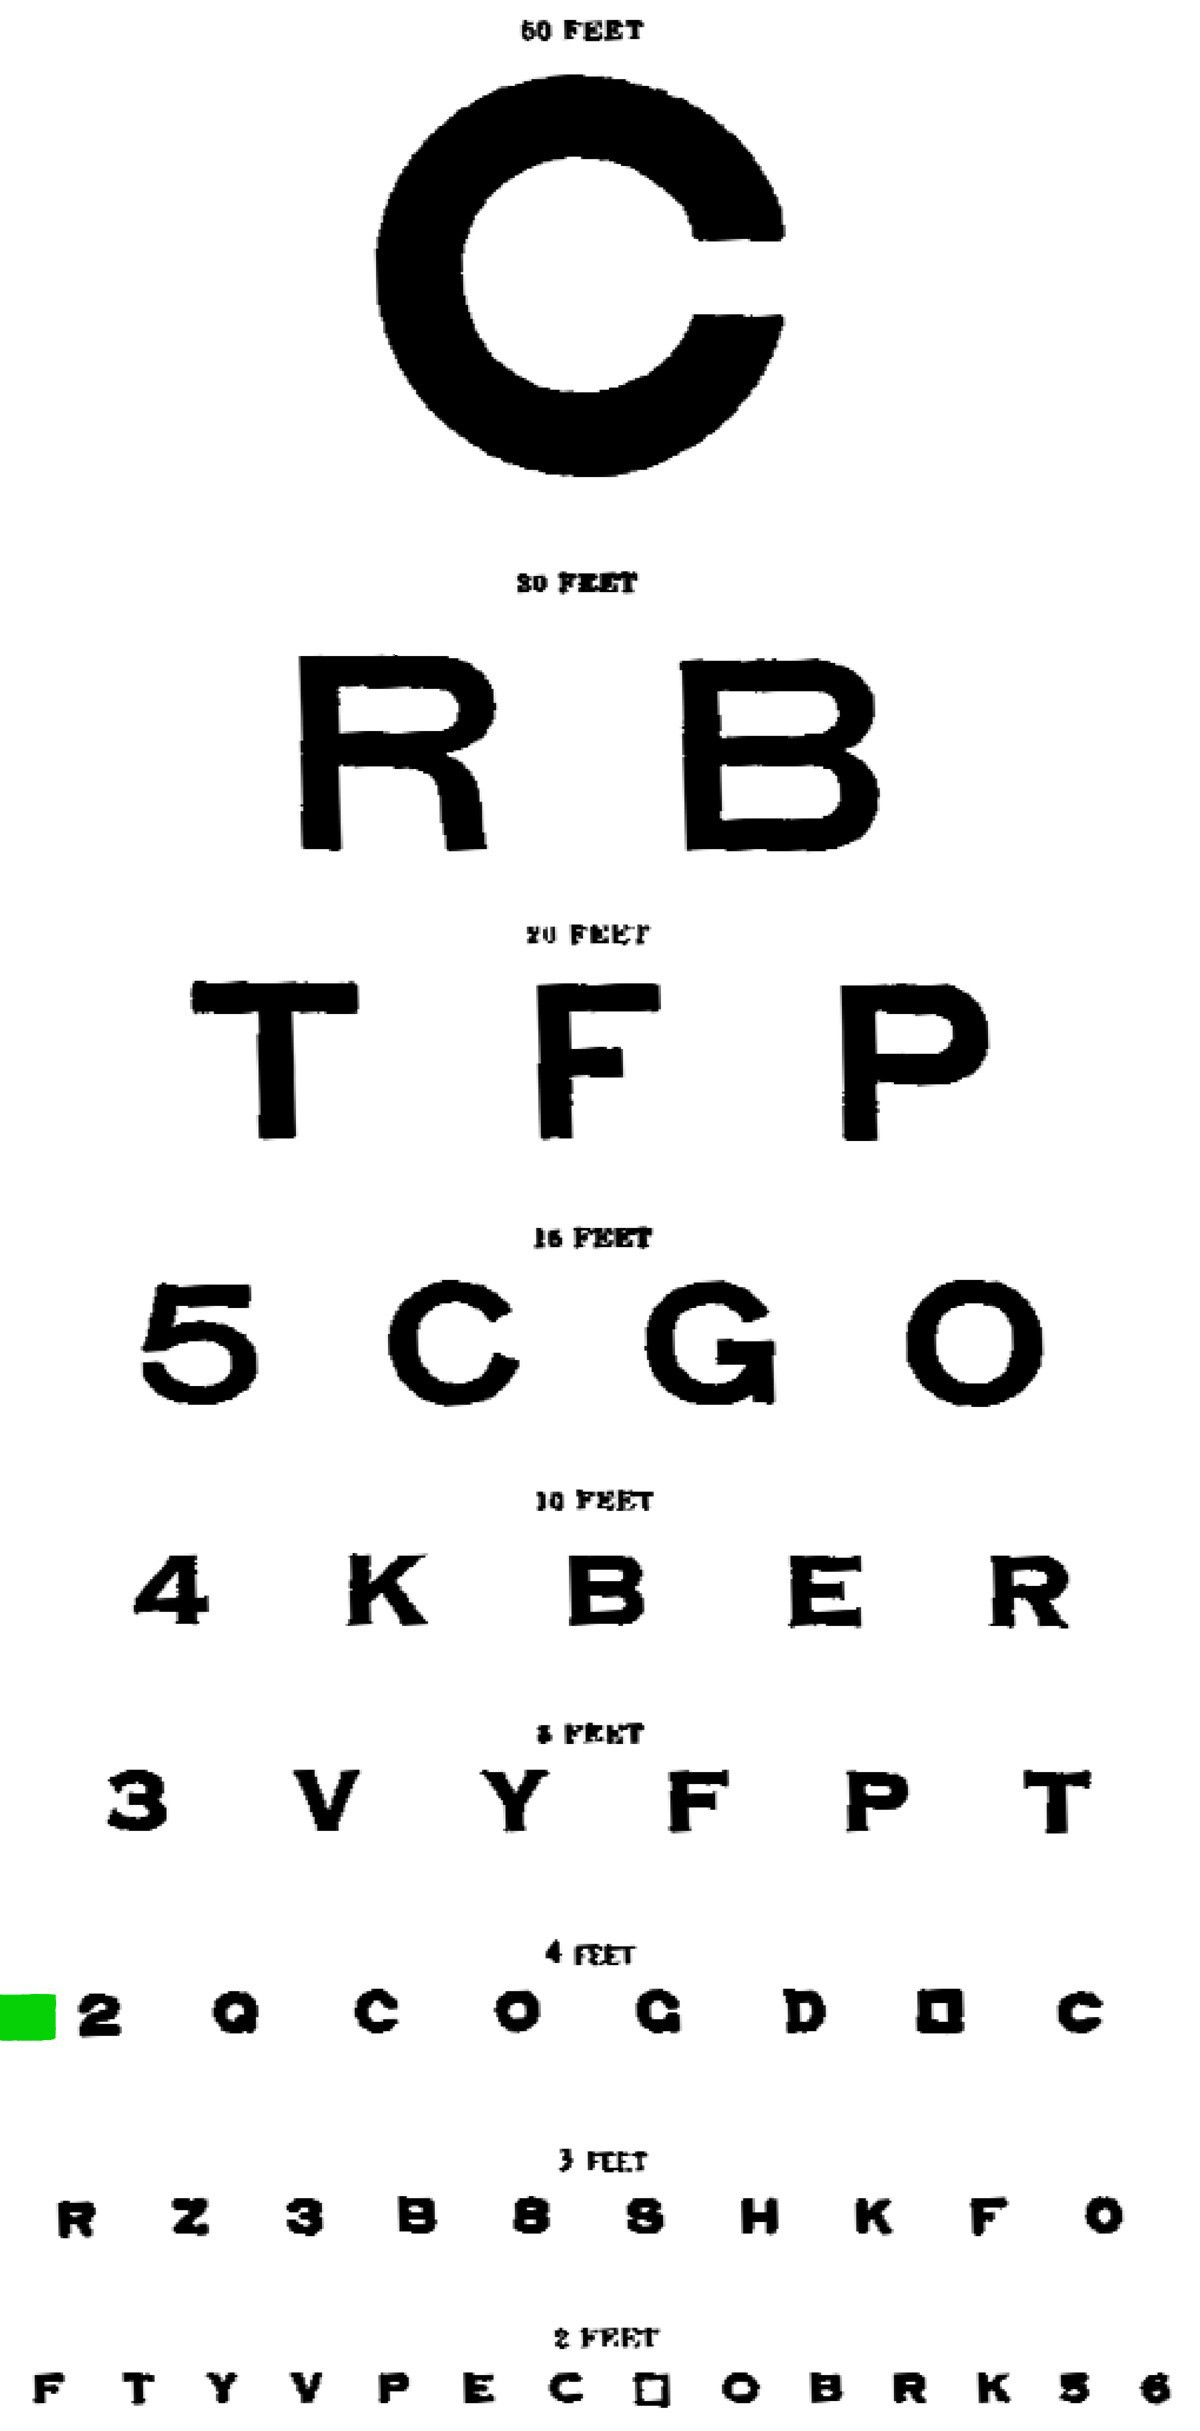 Eyecharts To Test And Improve Close And Distant Eyesight